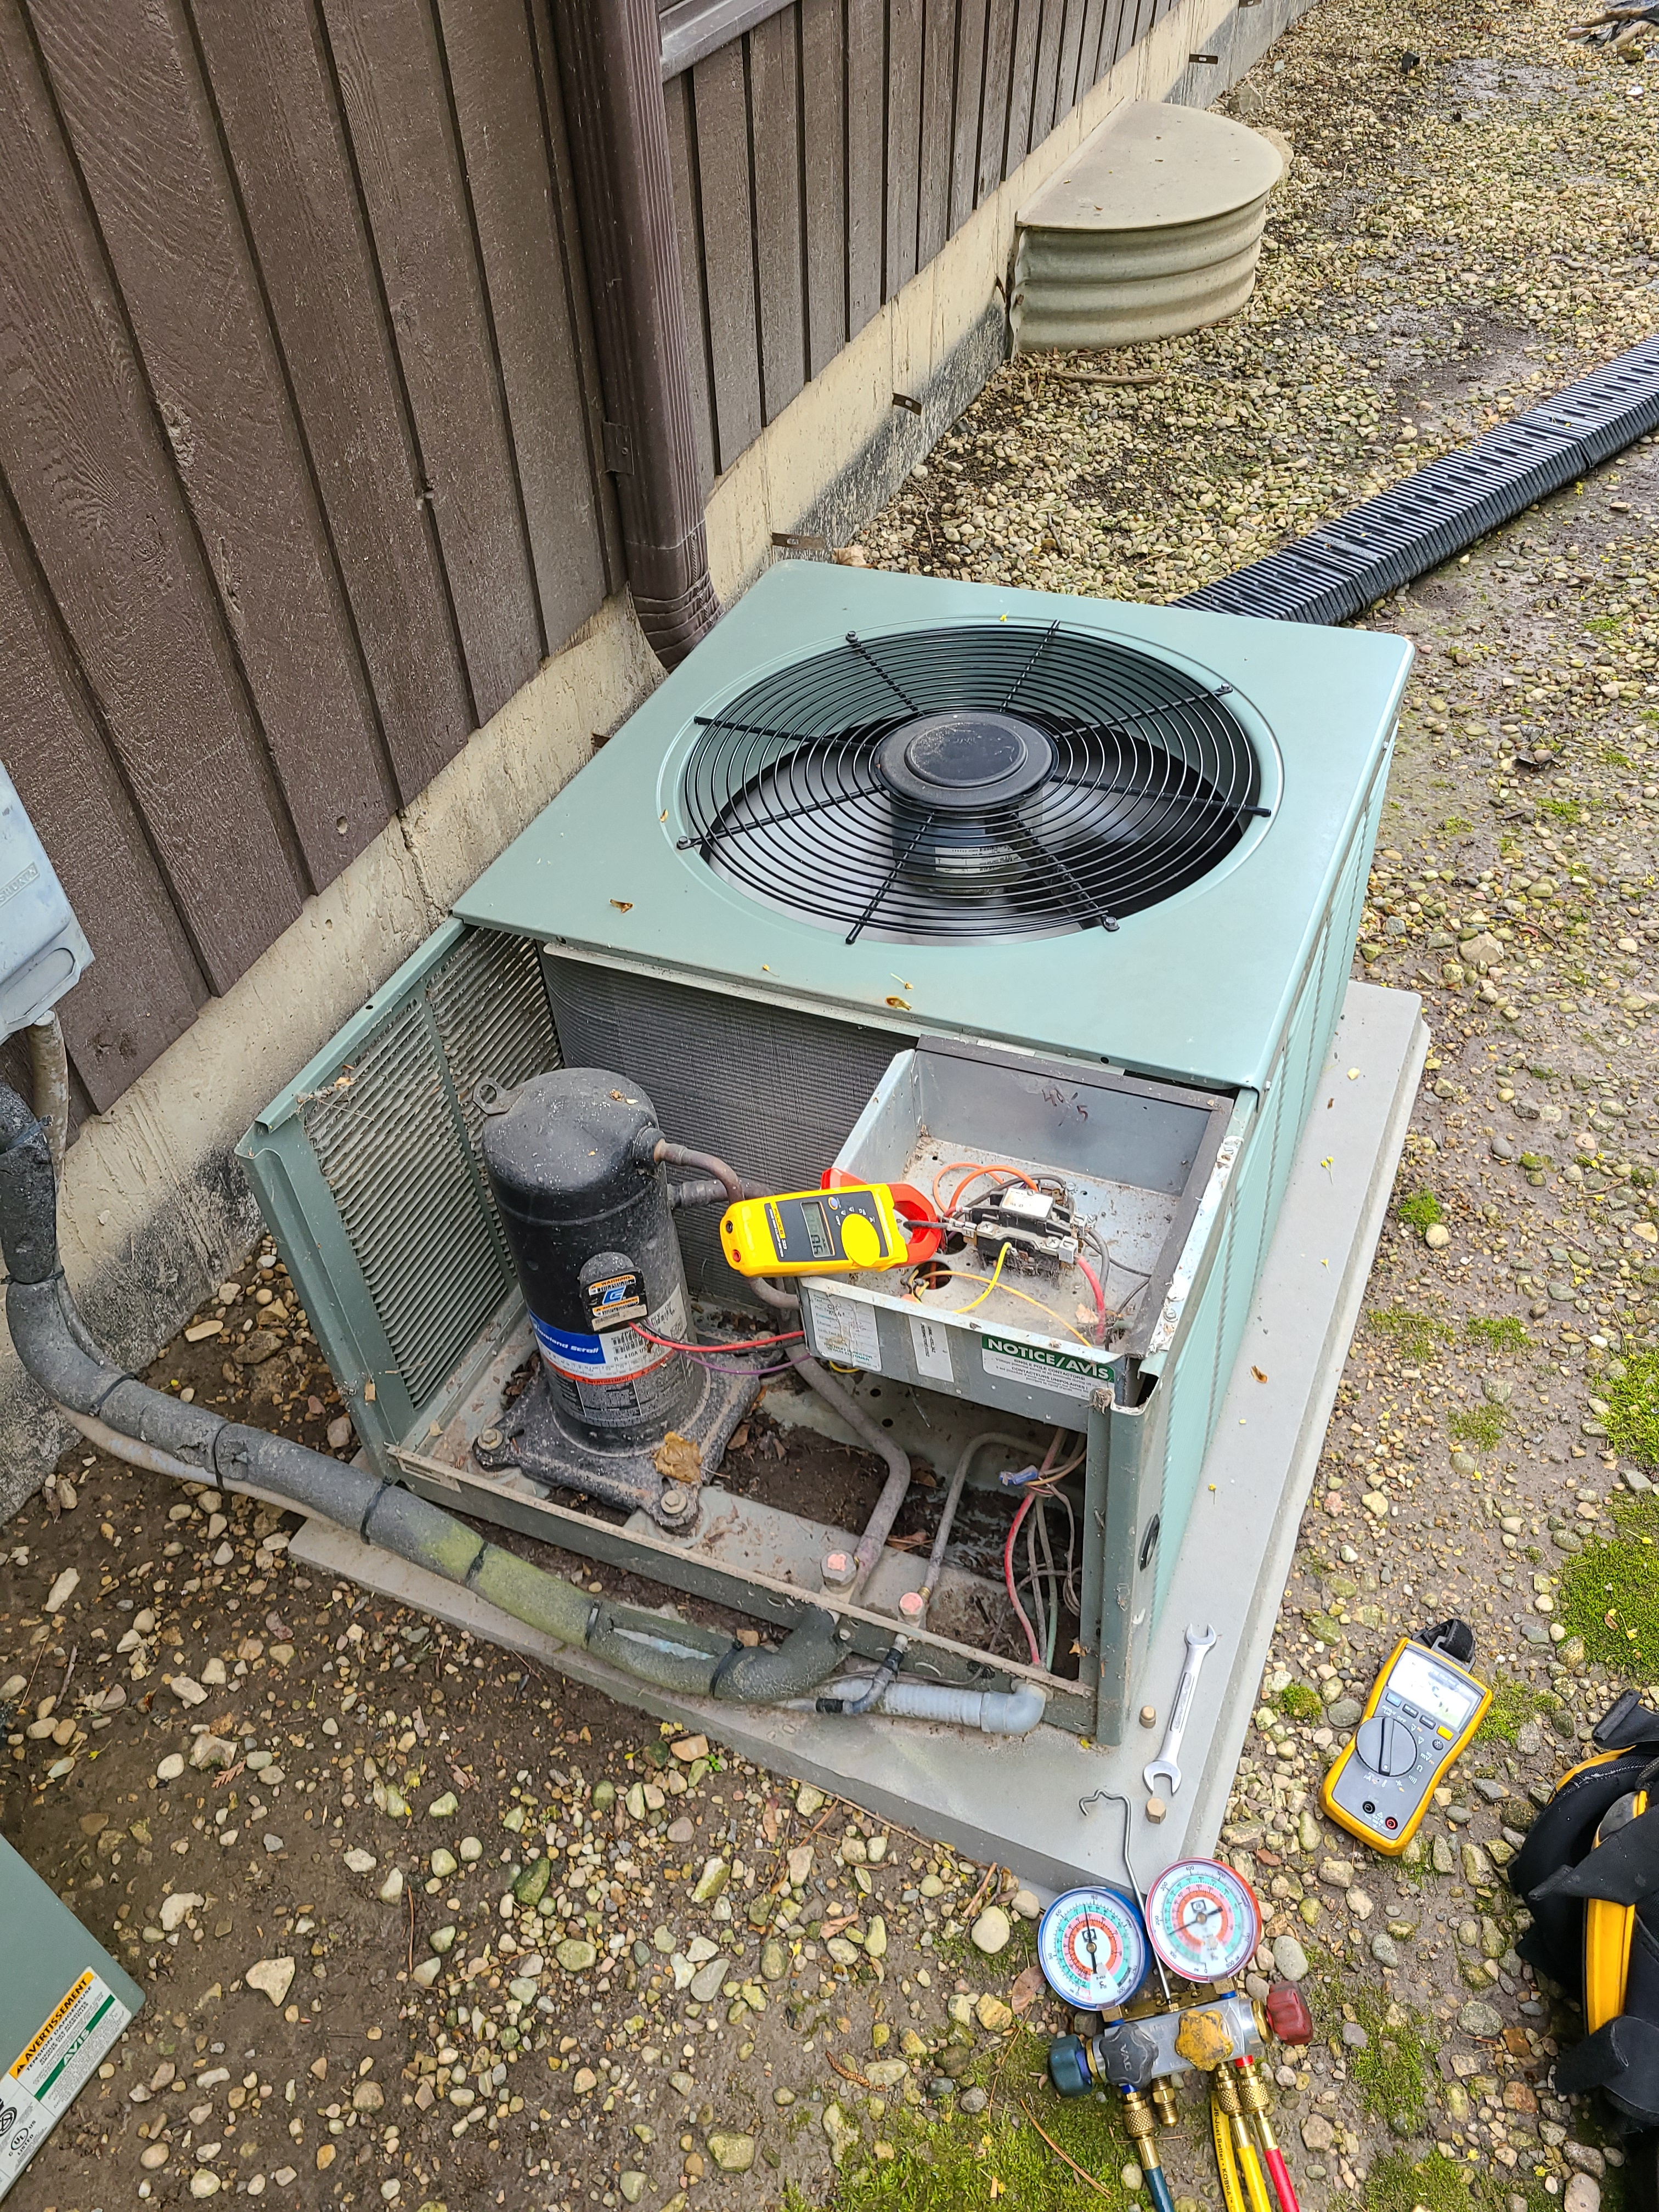 Rheem air conditioning system cleaned and checked, ready for spring.